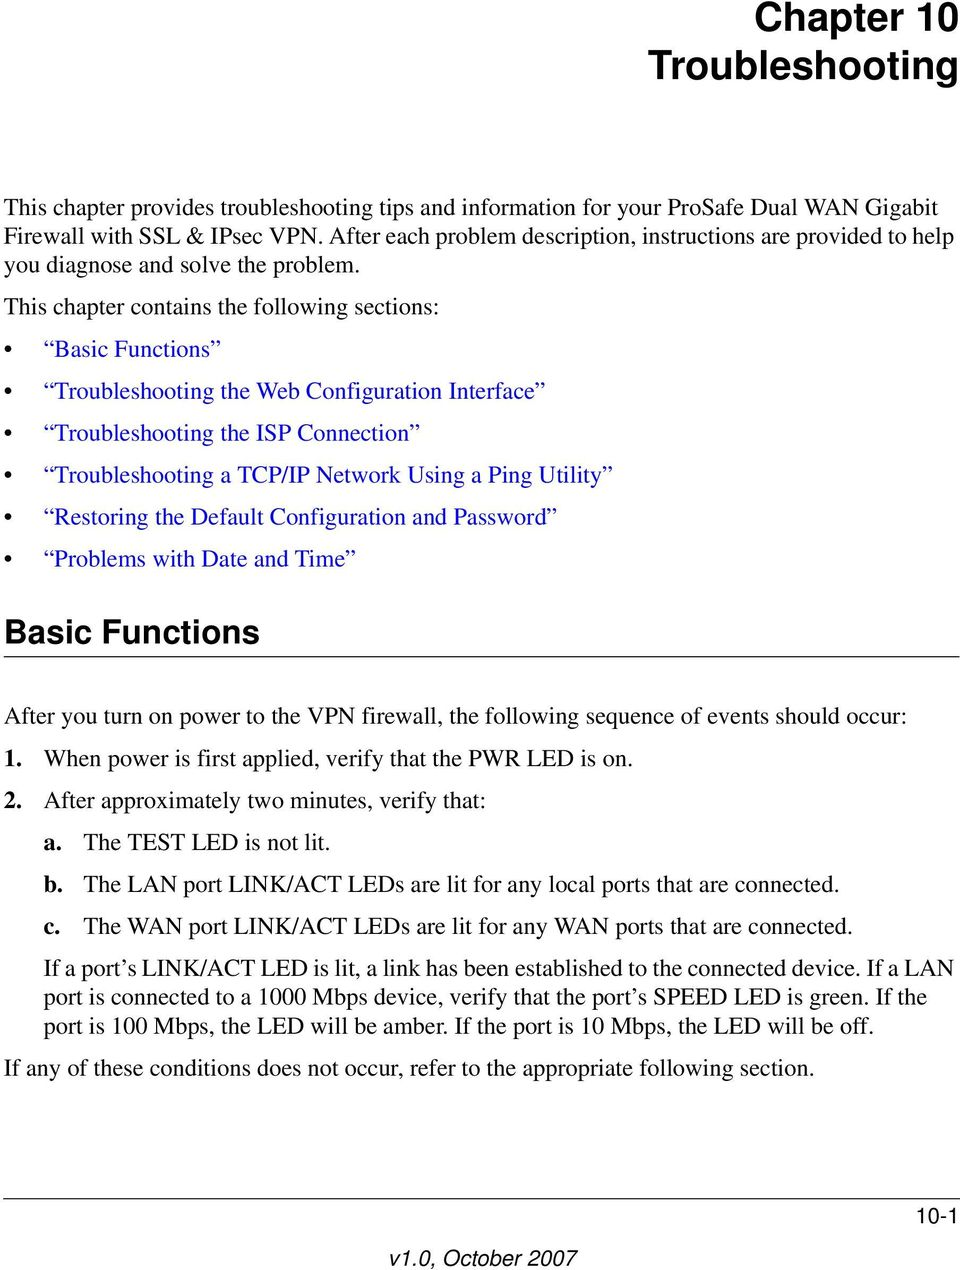 This chapter contains the following sections: Basic Functions Troubleshooting the Web Configuration Interface Troubleshooting the ISP Connection Troubleshooting a TCP/IP Network Using a Ping Utility